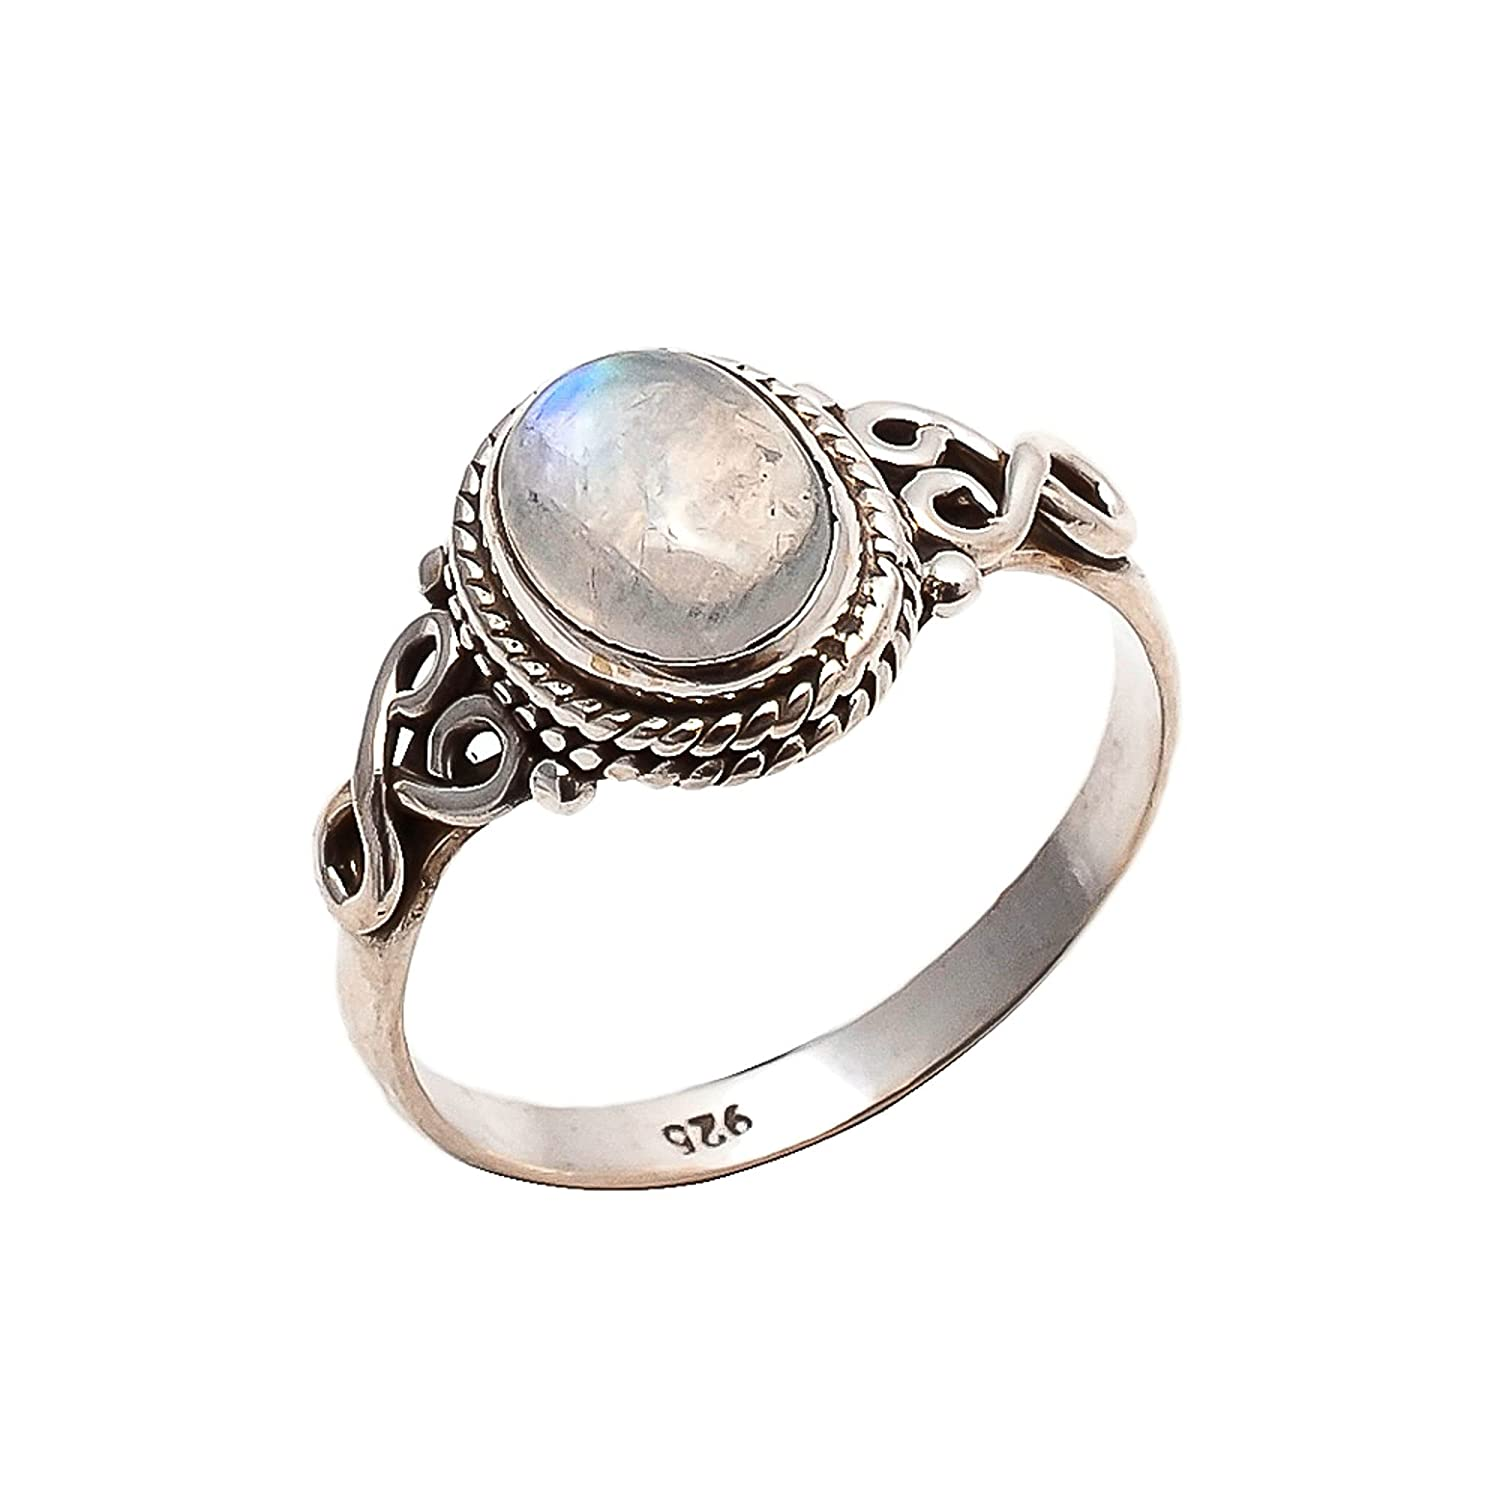 shop Rainbow Topics on TV Moonstone Ring 925 Sterling Statement Silver Wo For